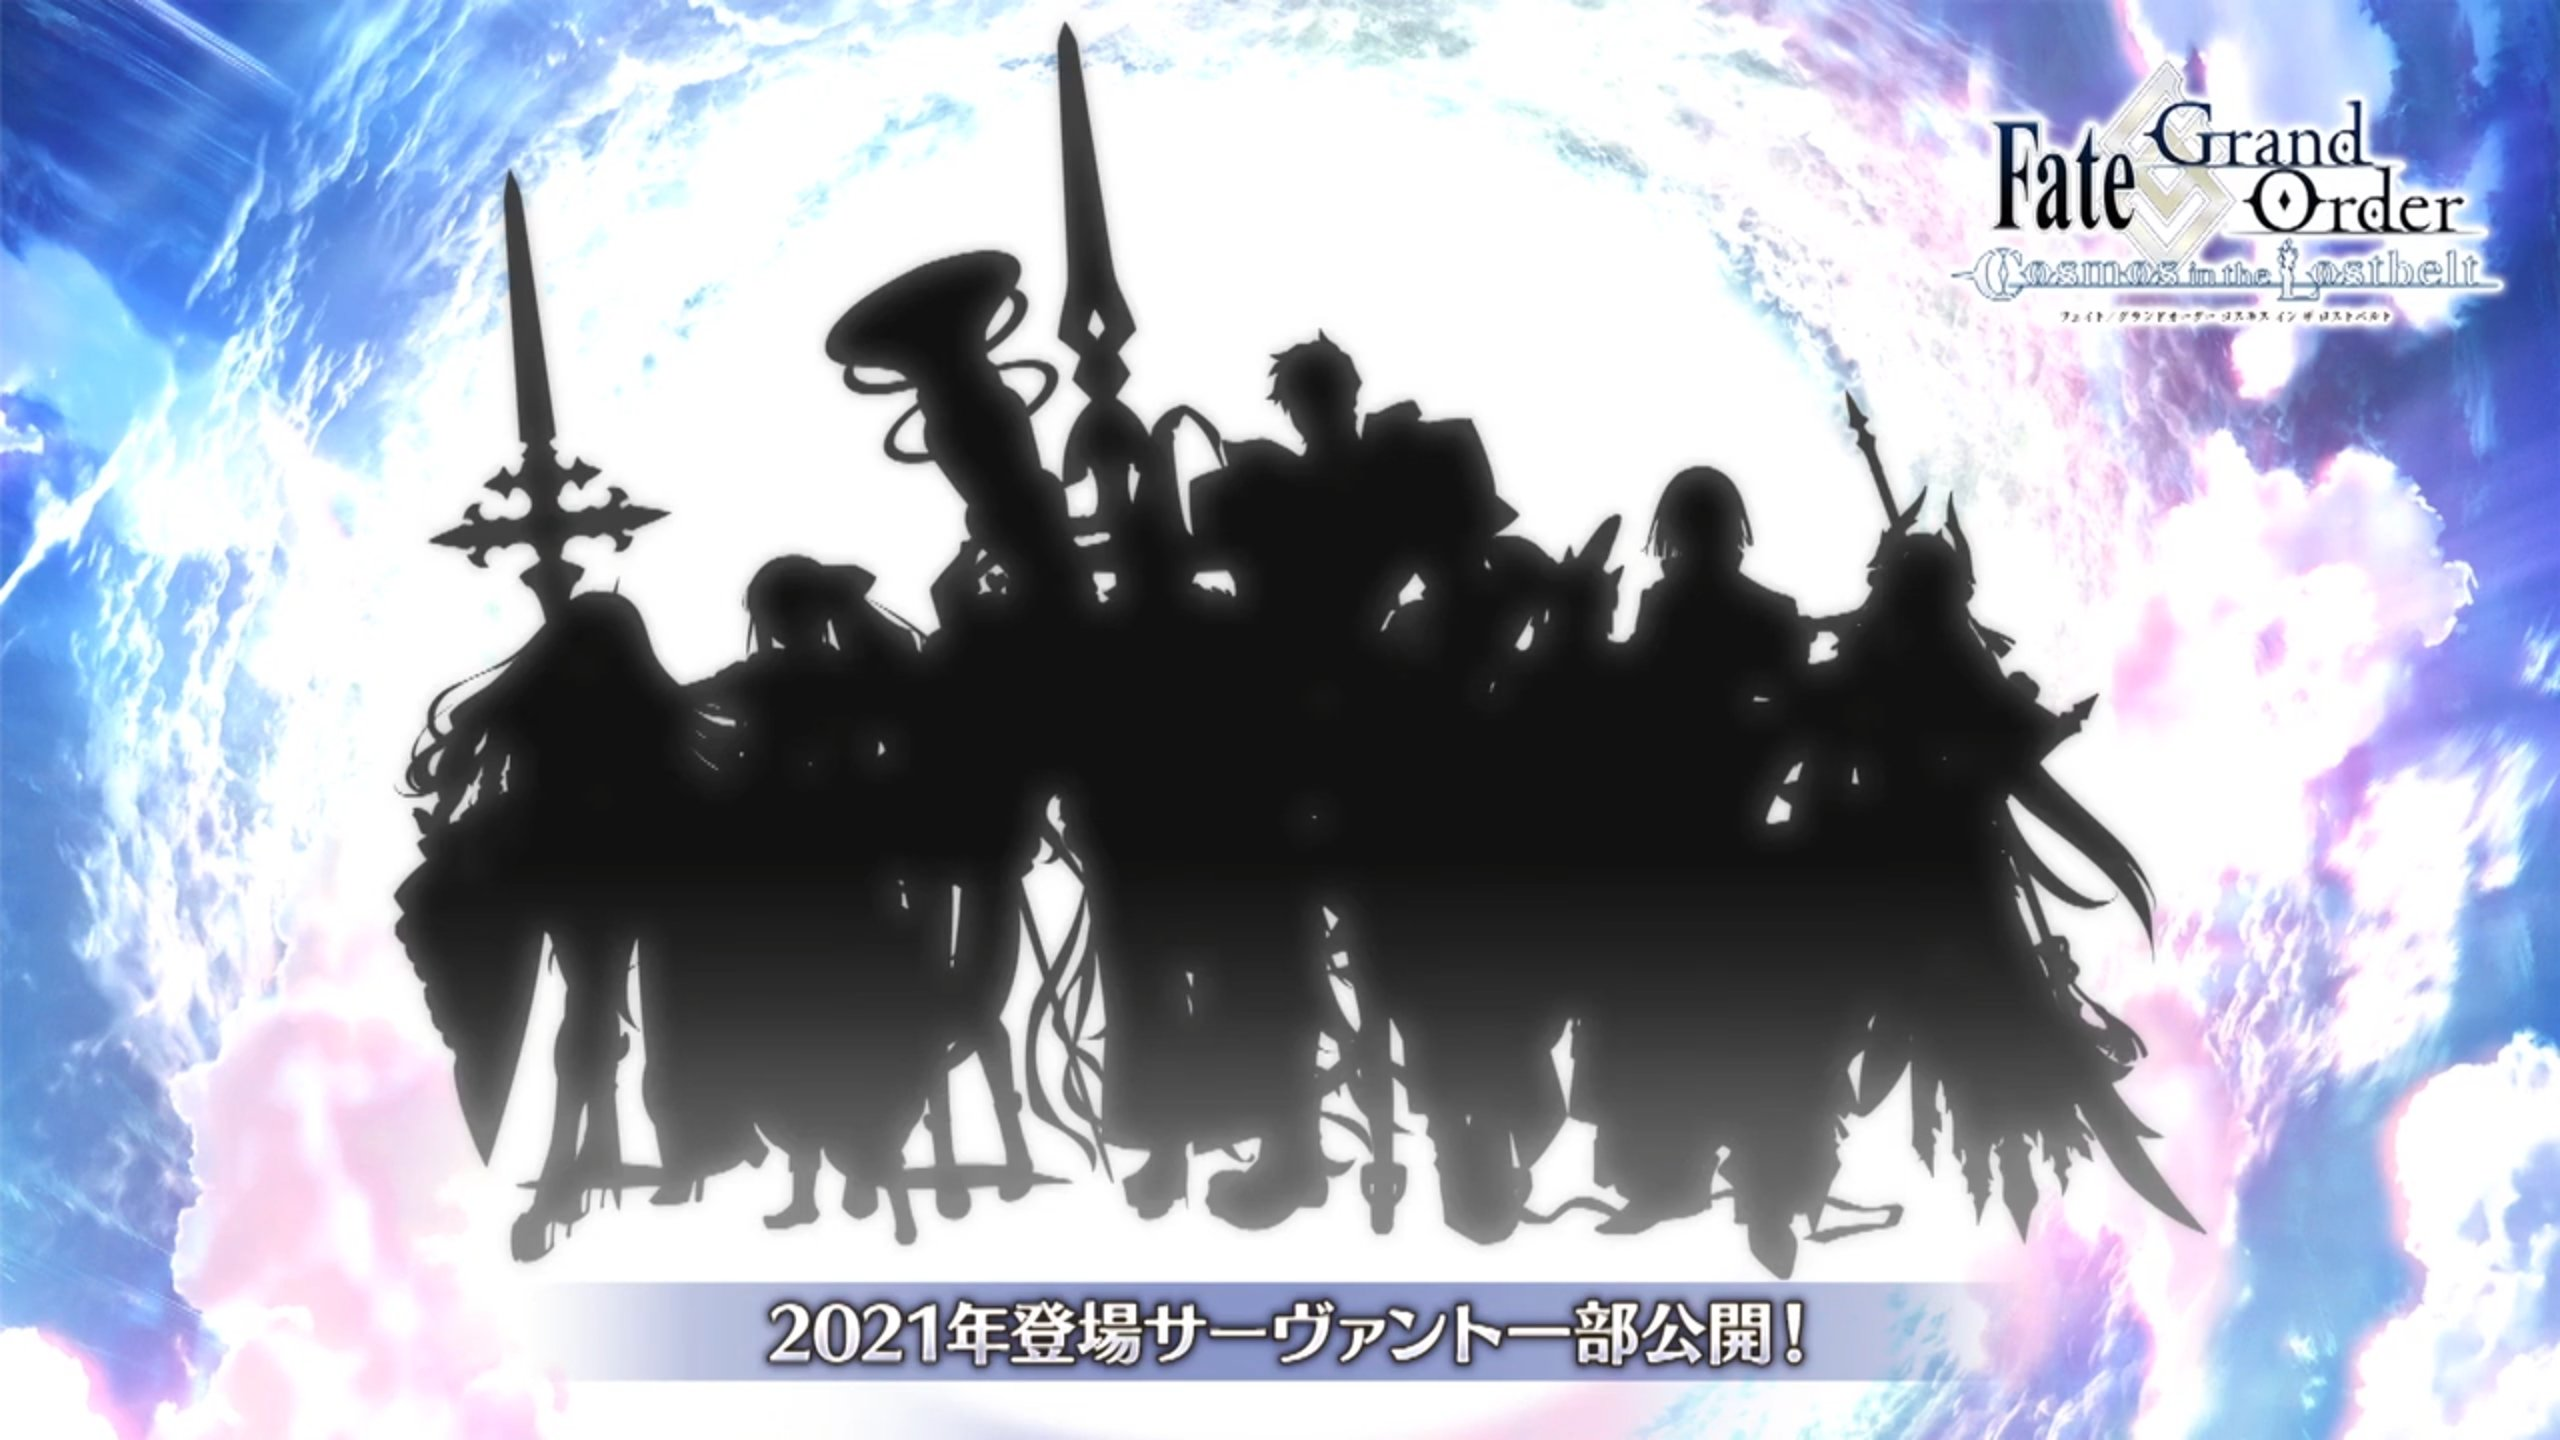 Fate/Grand Order servants 2021